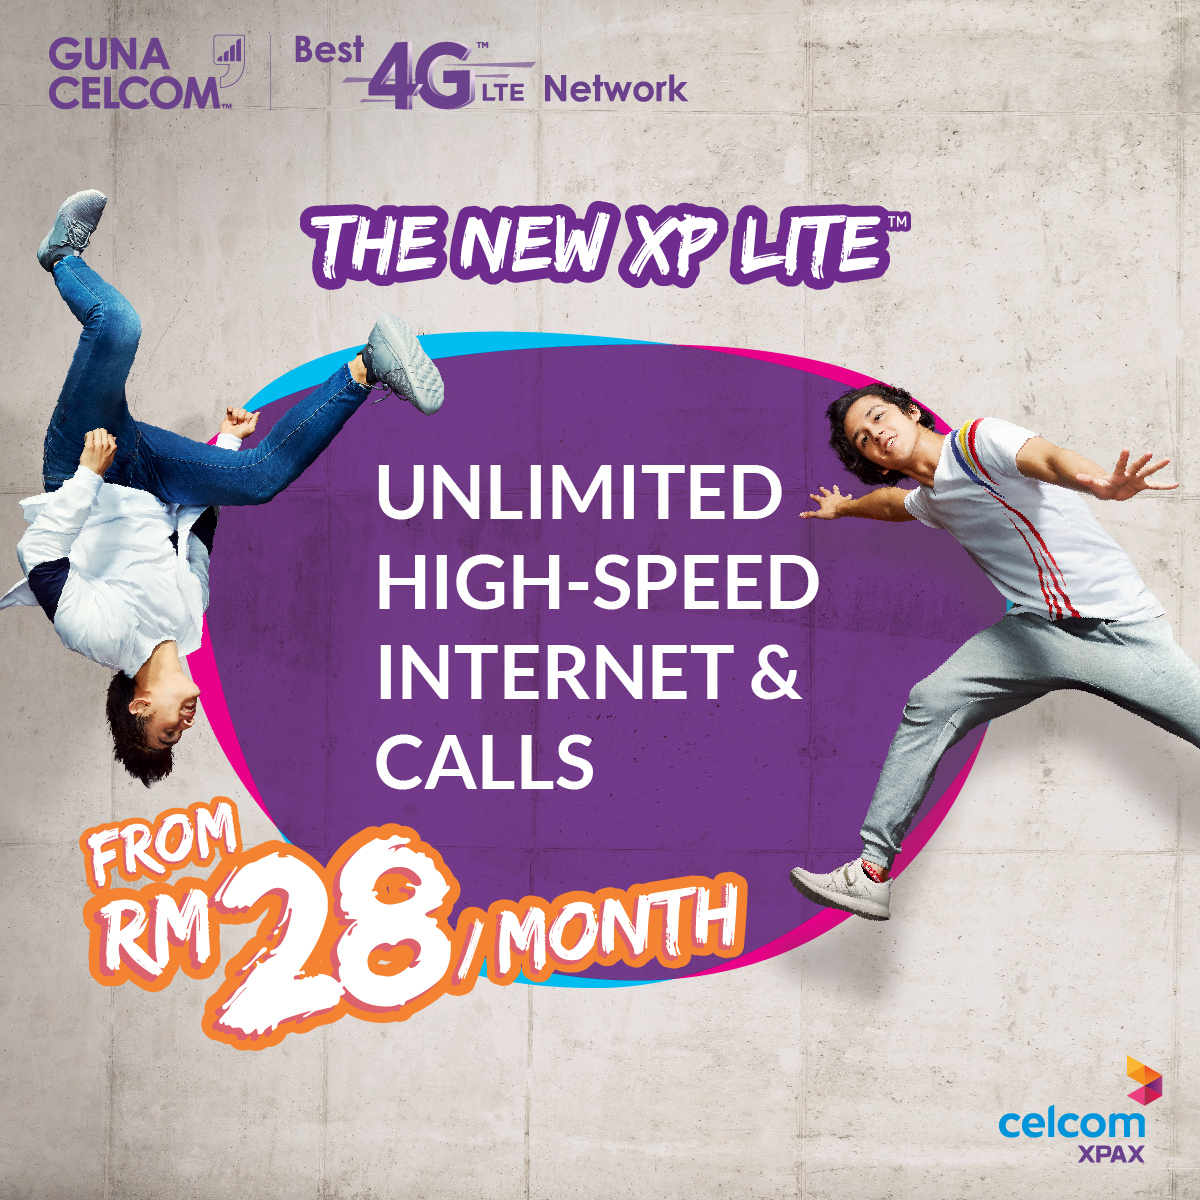 Image from Celcom Xpax